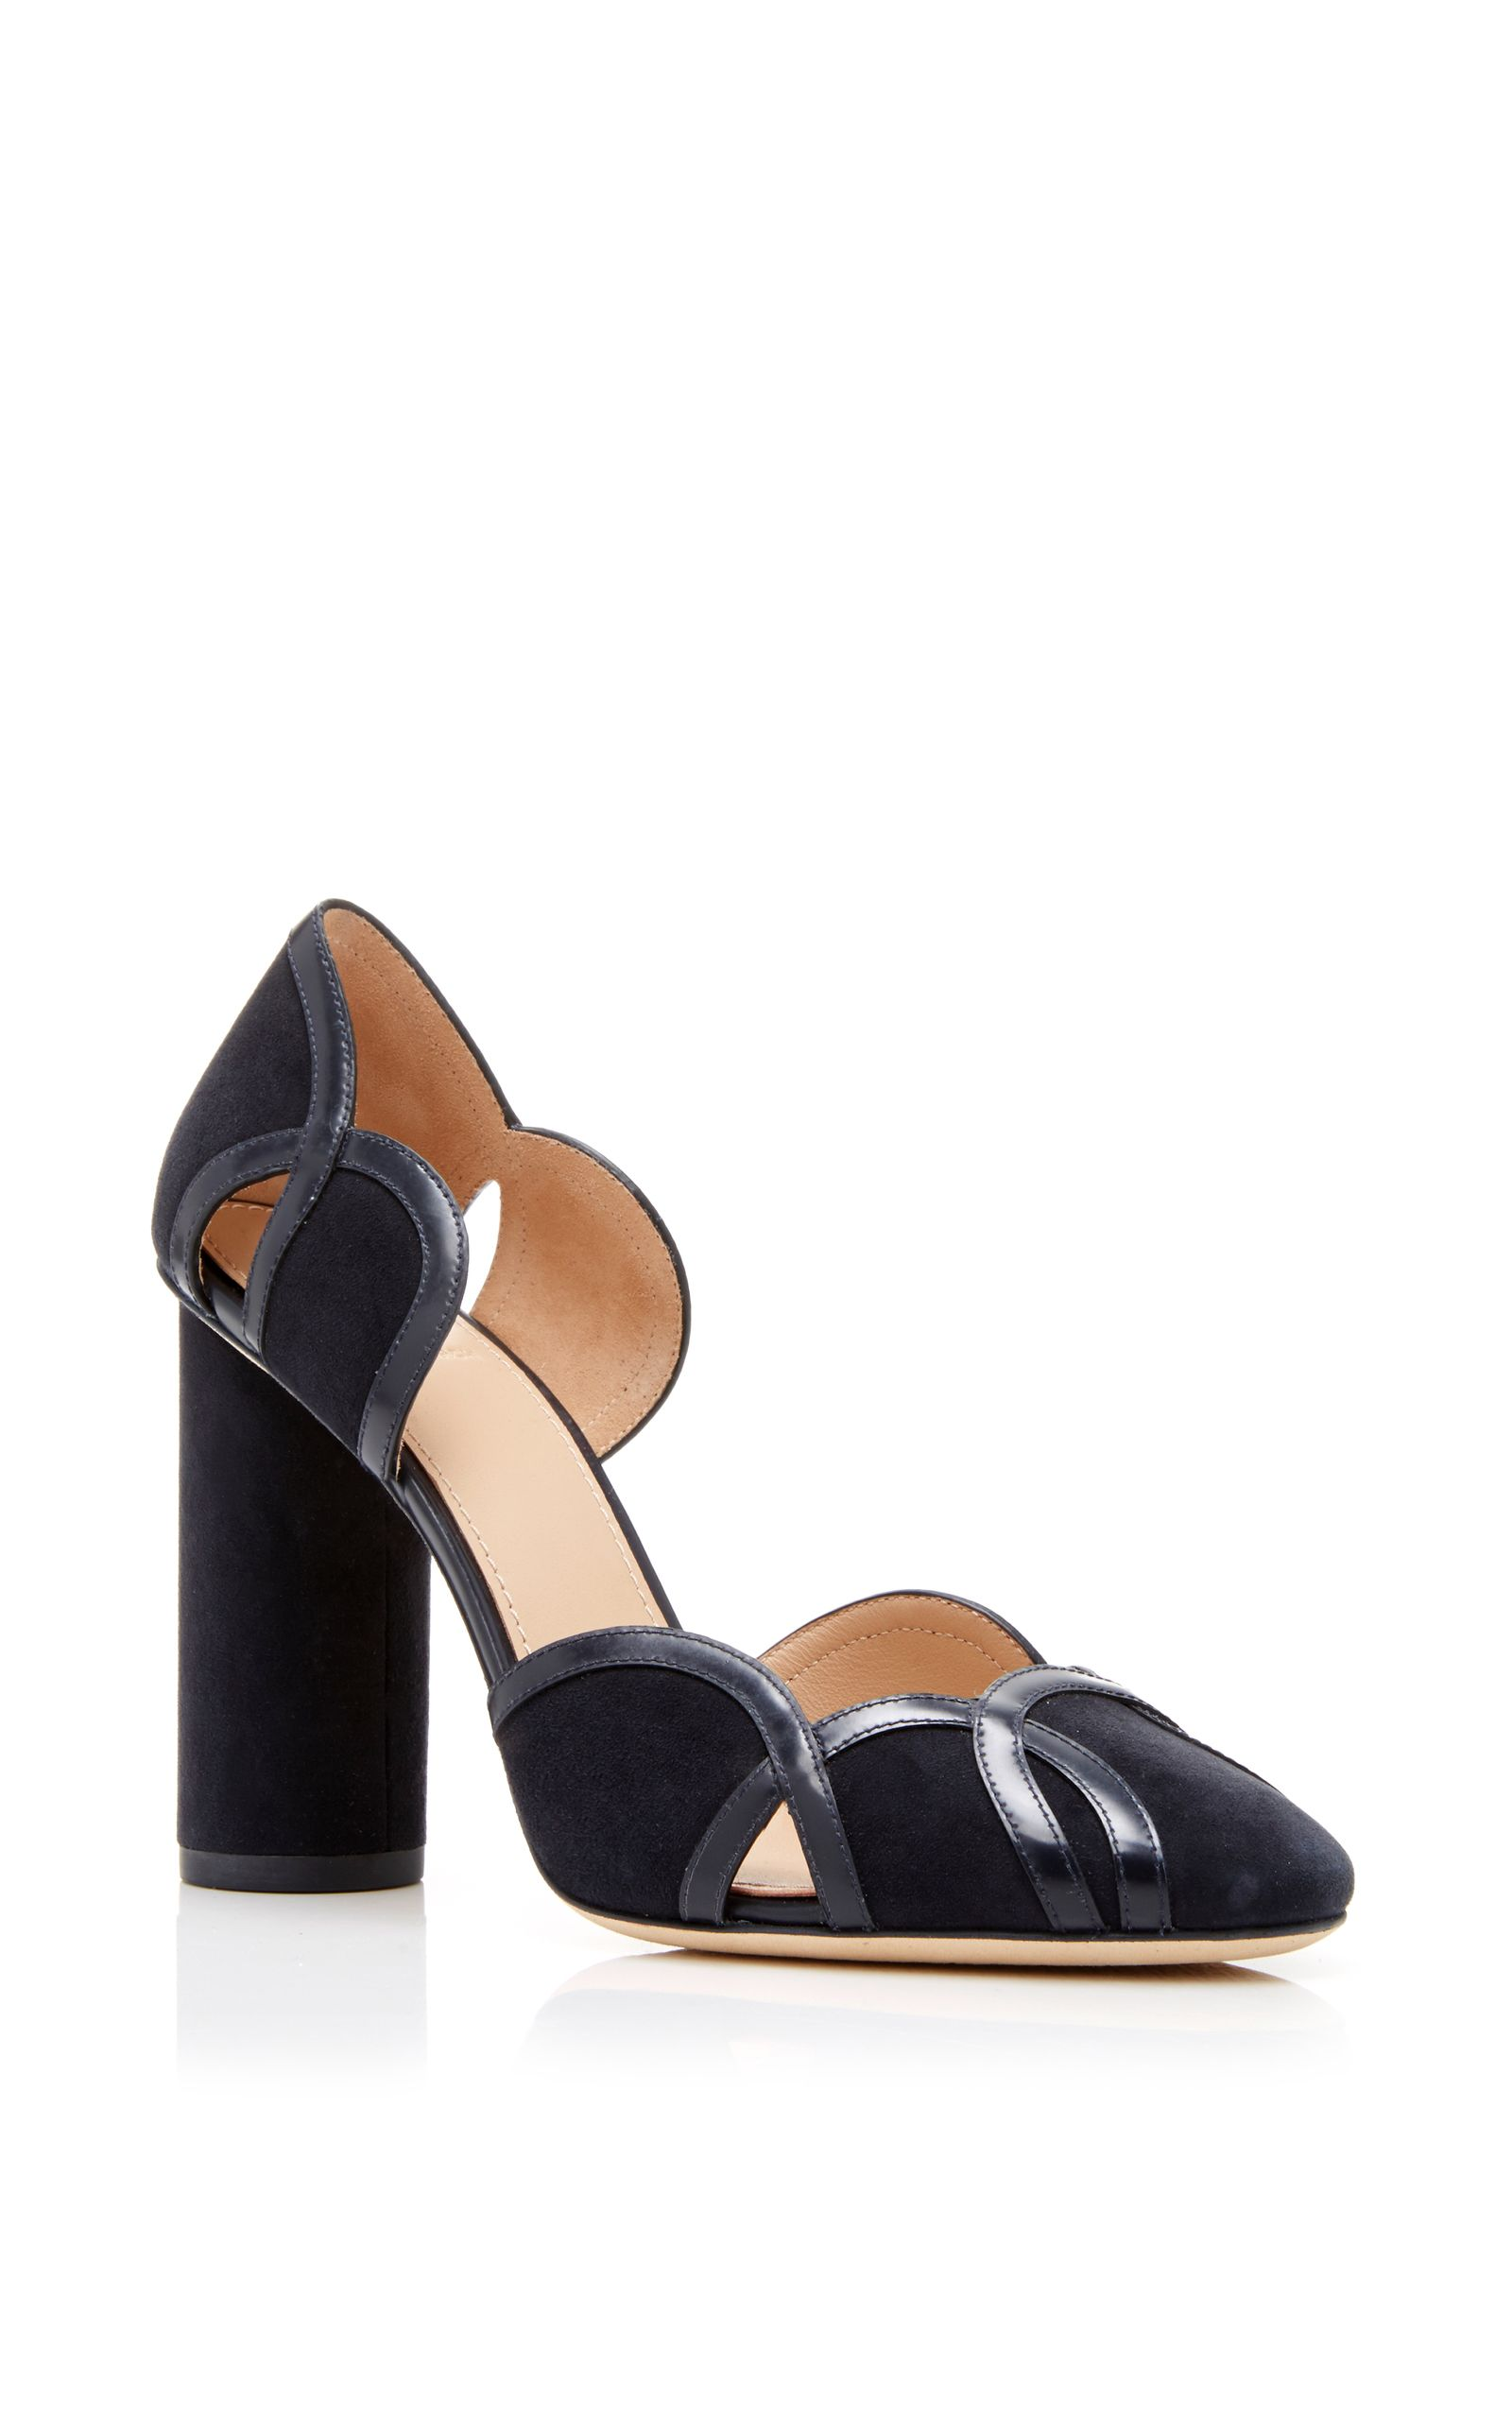 Violetta Pump by TORY BURCH - $375